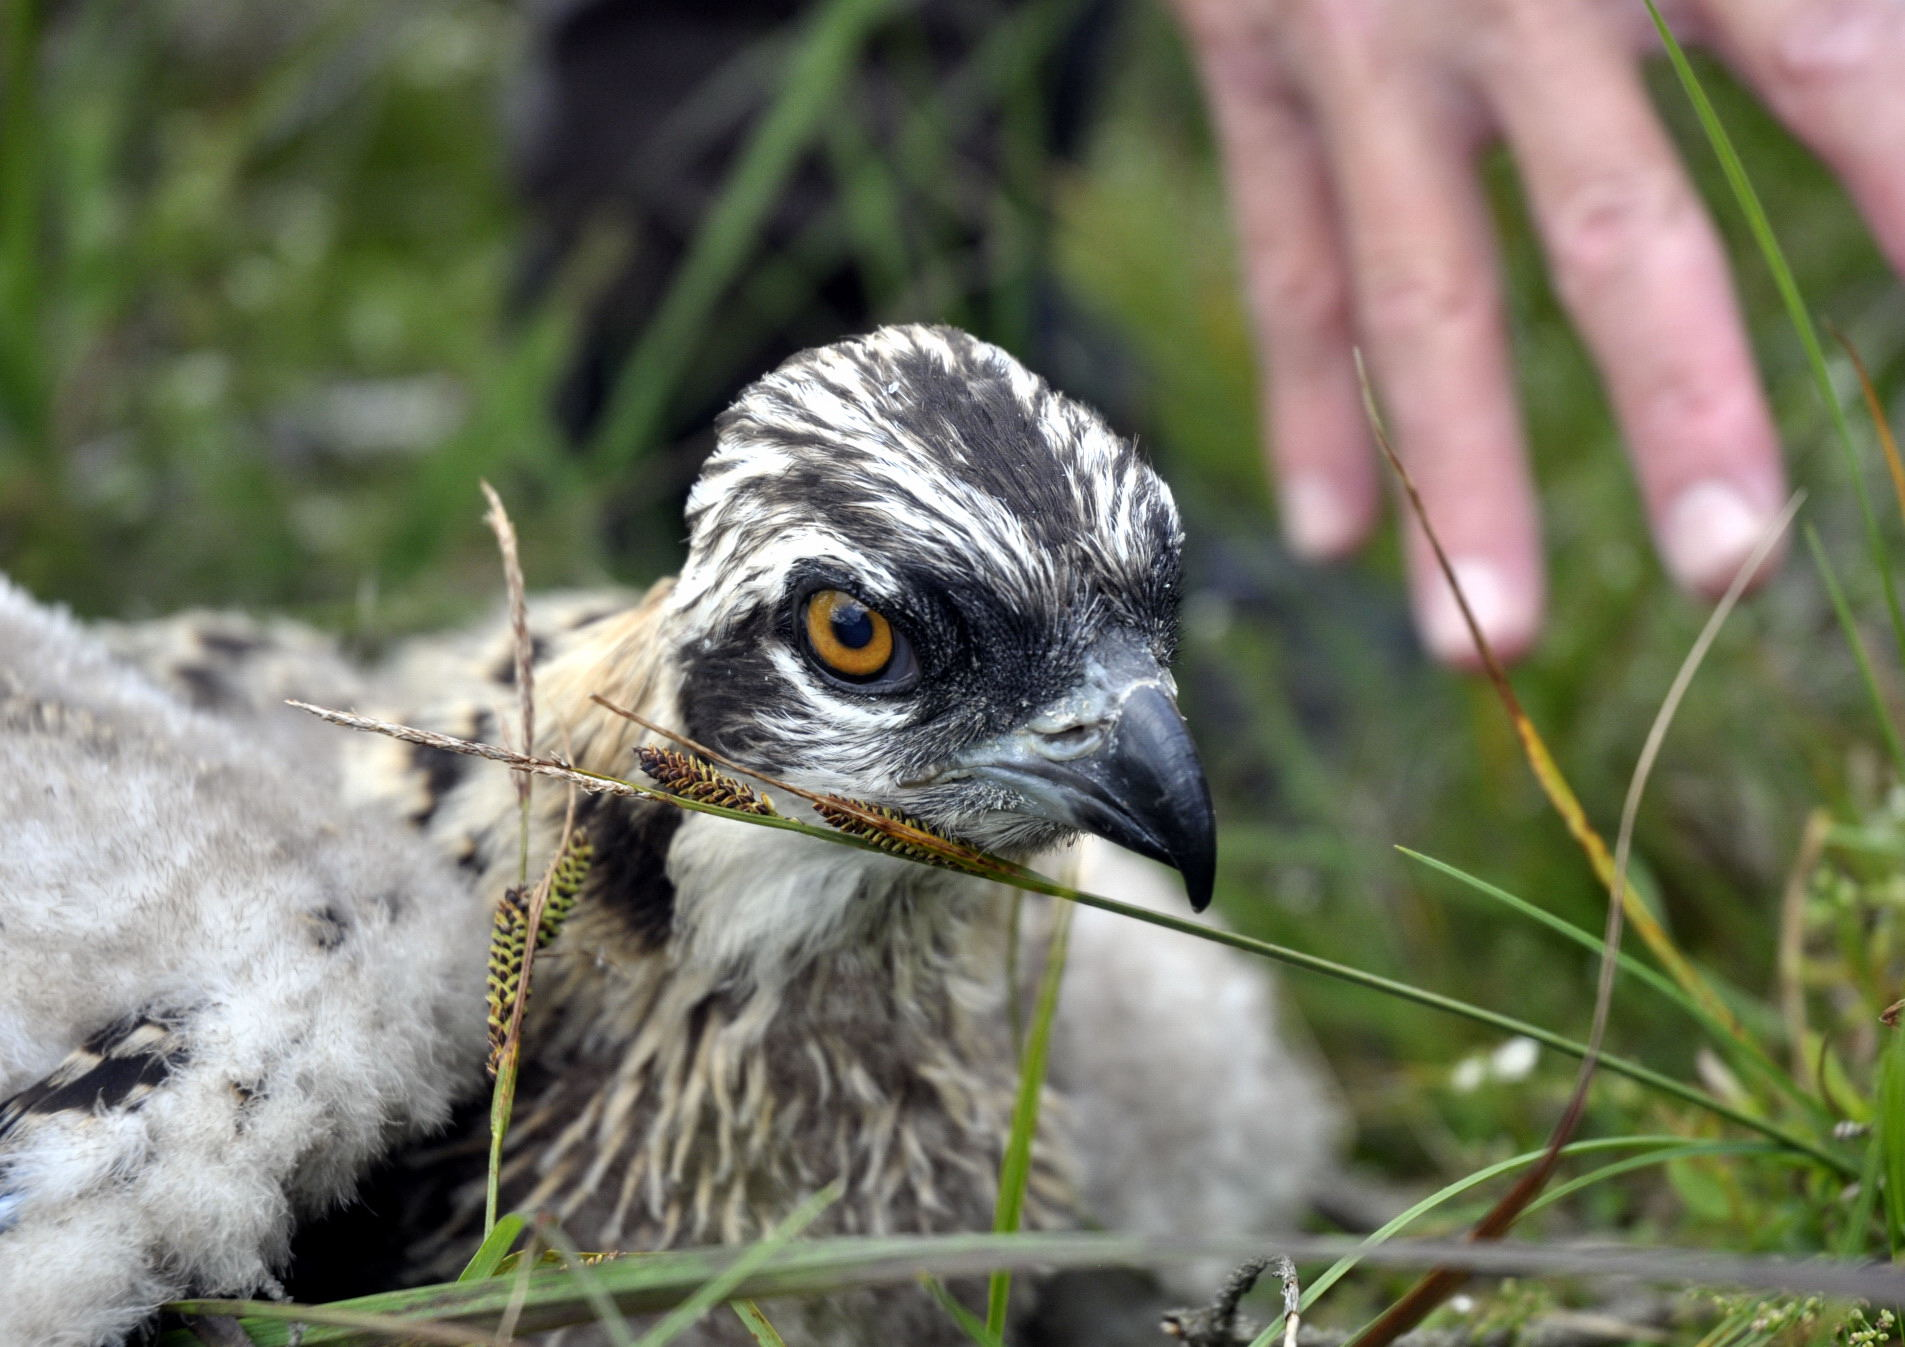 One of two chicks raised in 2011 and spotted on Osprey Watch